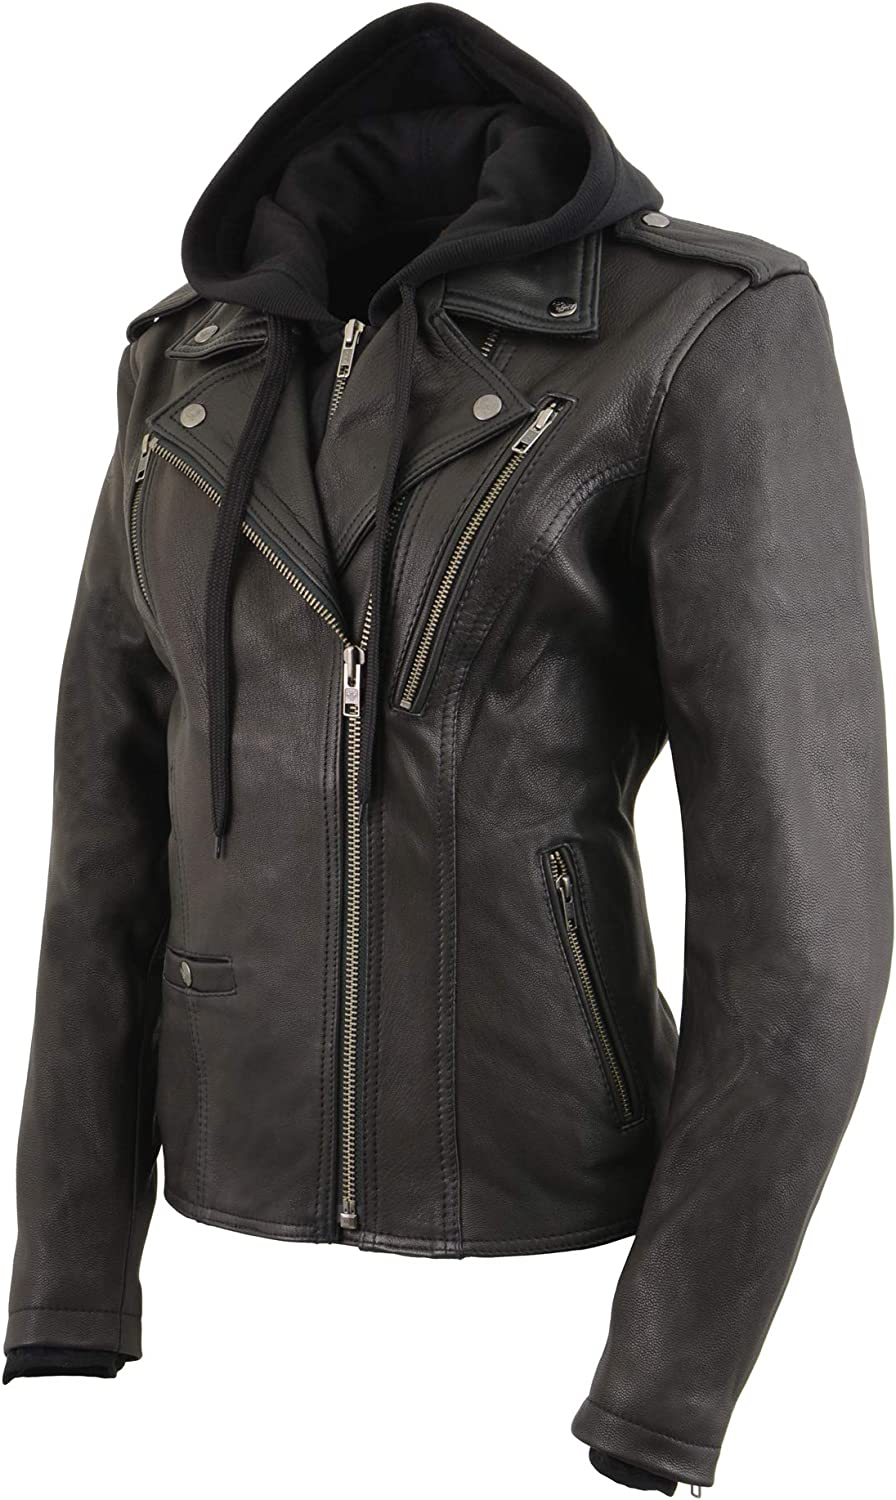 3X-Large Milwaukee Leather MLL2575 Women/'s Black Vented MC Jacket with Removable Hoodie